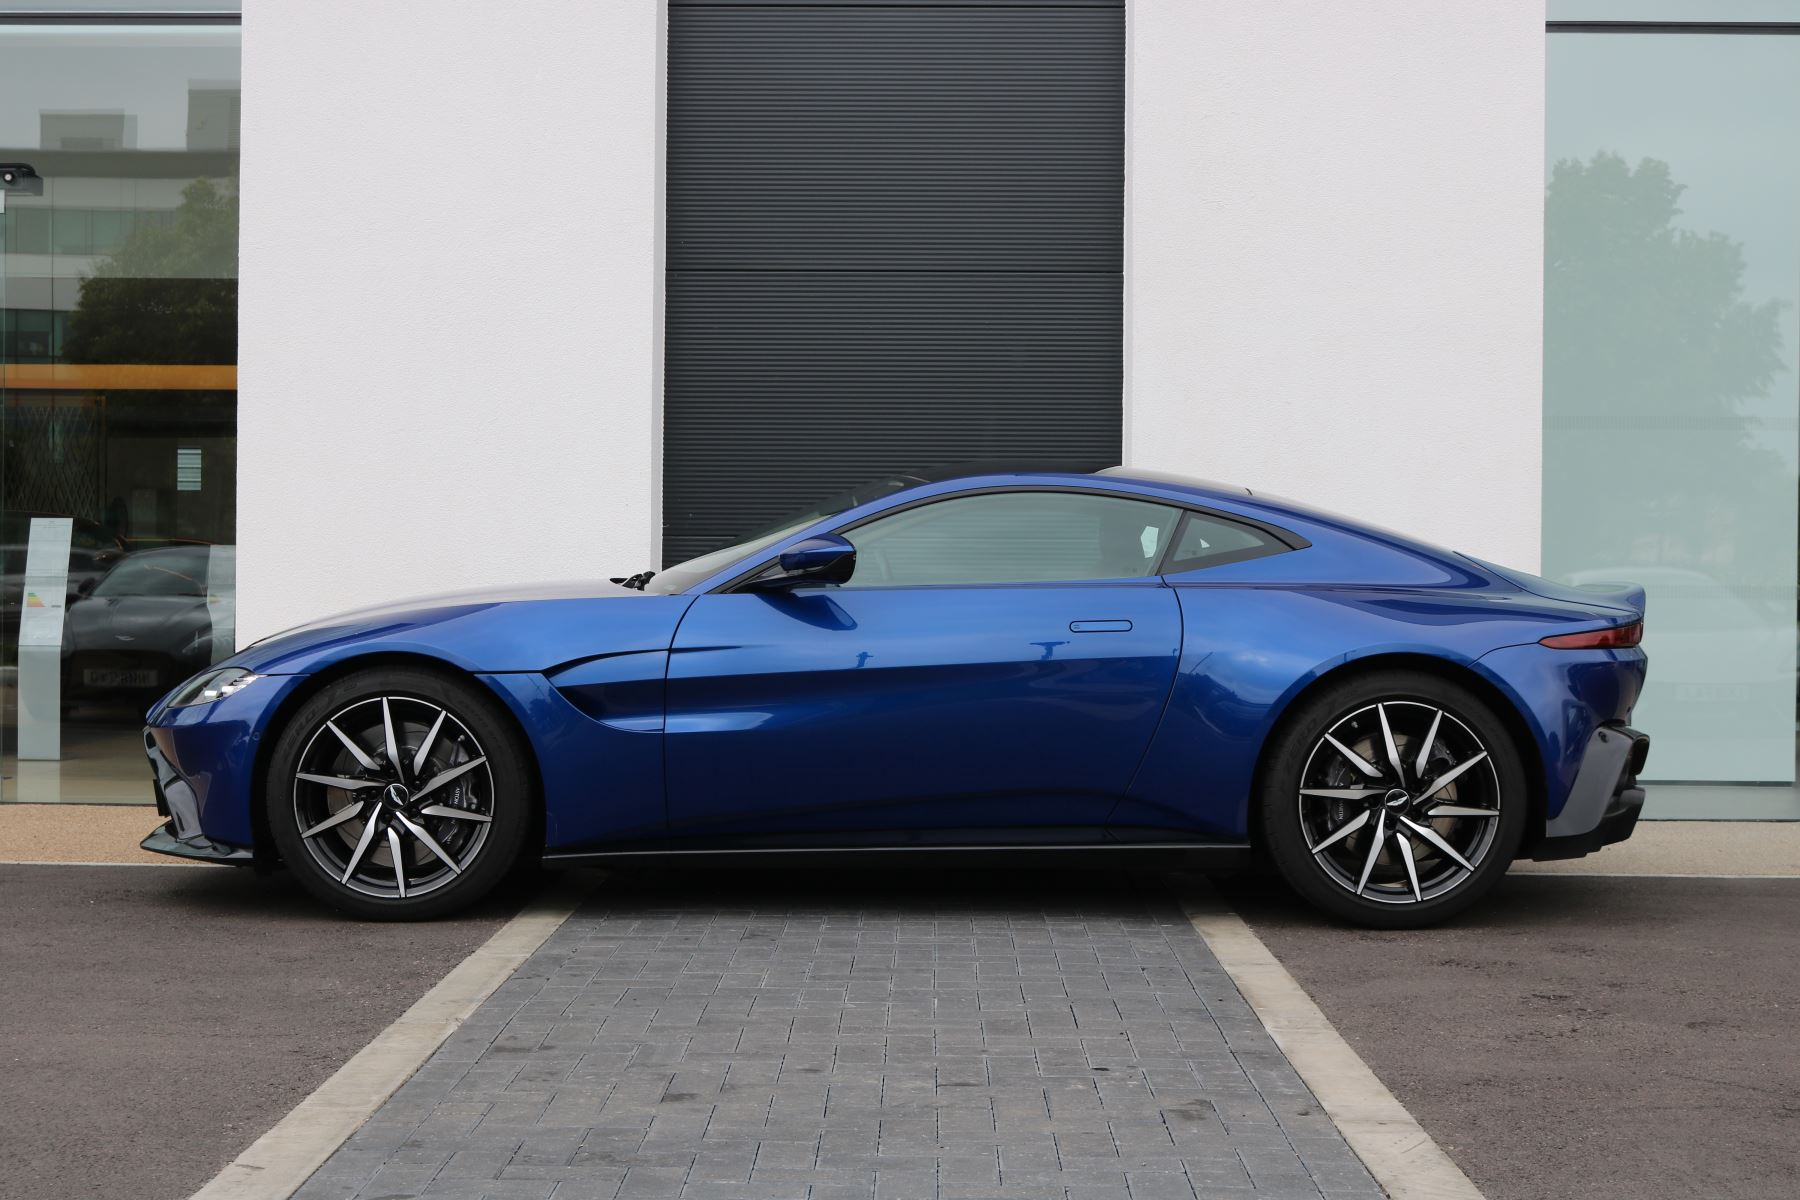 Aston Martin V8 Vantage Coupe 2dr ZF 8 Speed image 2